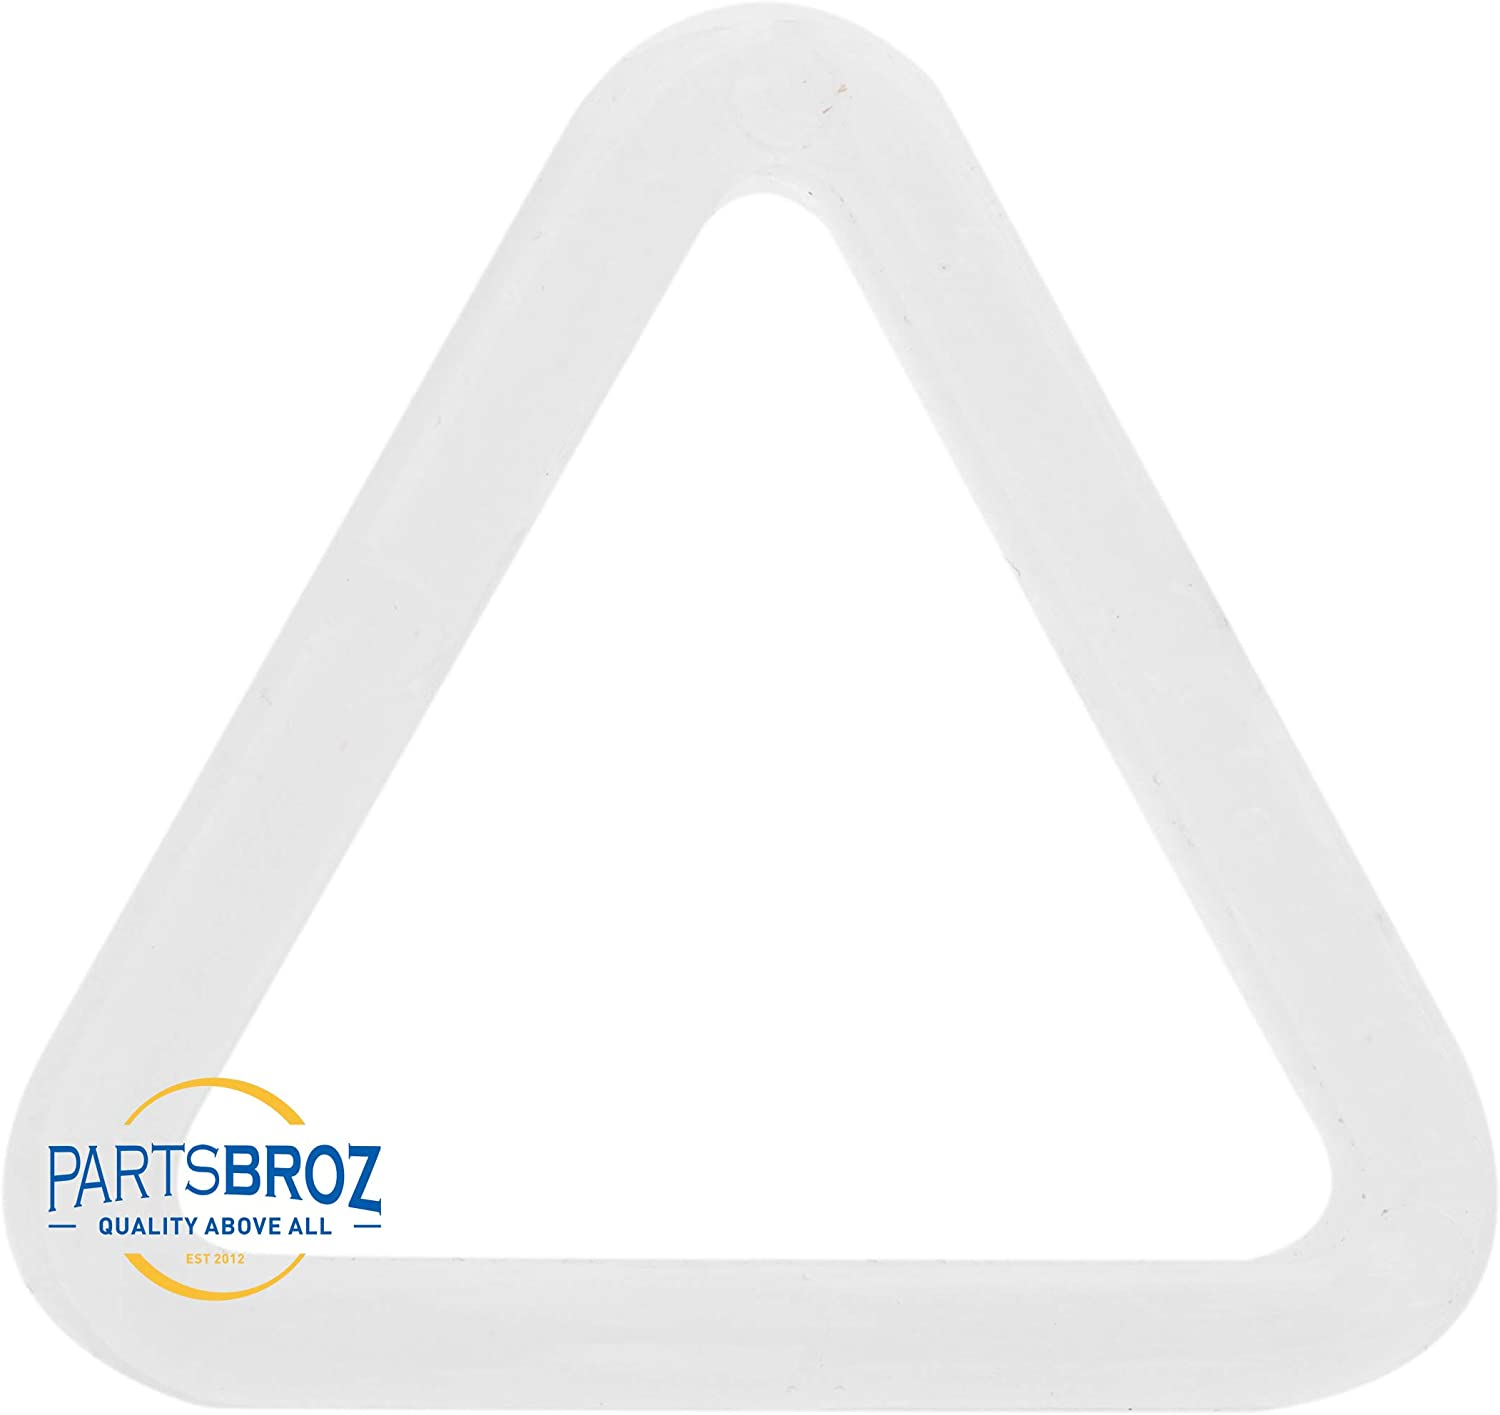 DC61-01228A Drum Support Roller Retainer for Maytag Dryers by PartsBroz Replaces Part Numbers AP4202087 /& 2069098